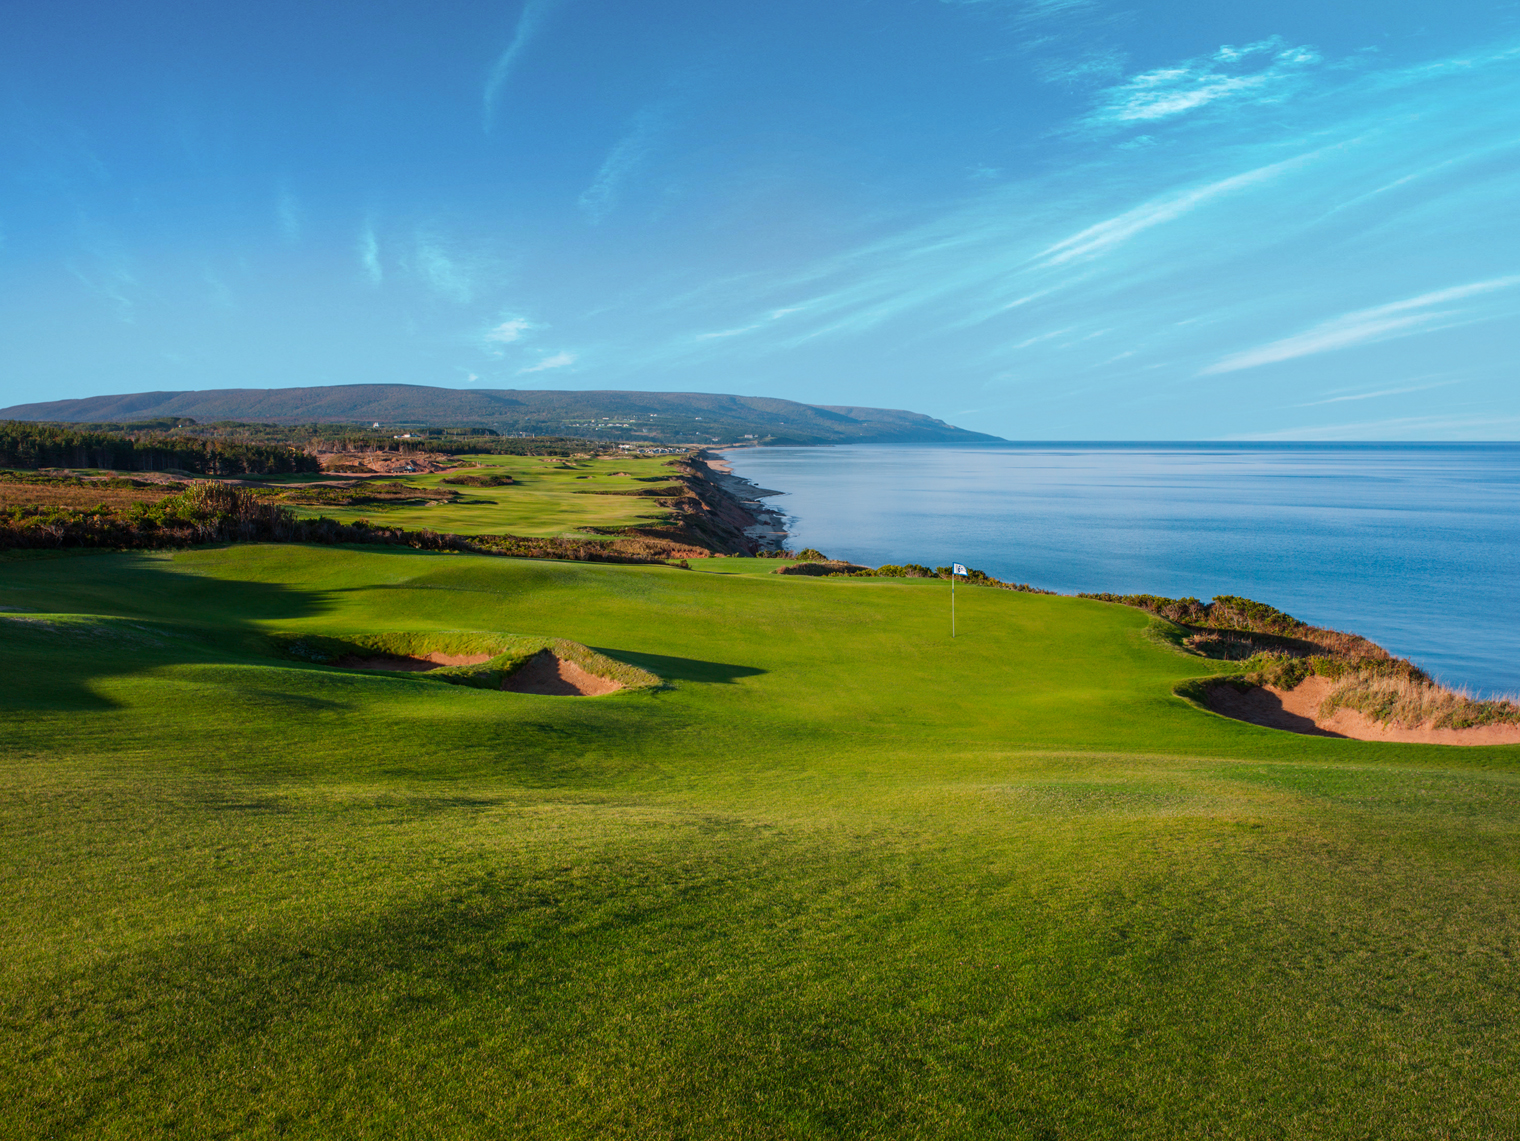 Cabot Links & Cabot Cliffs Golf